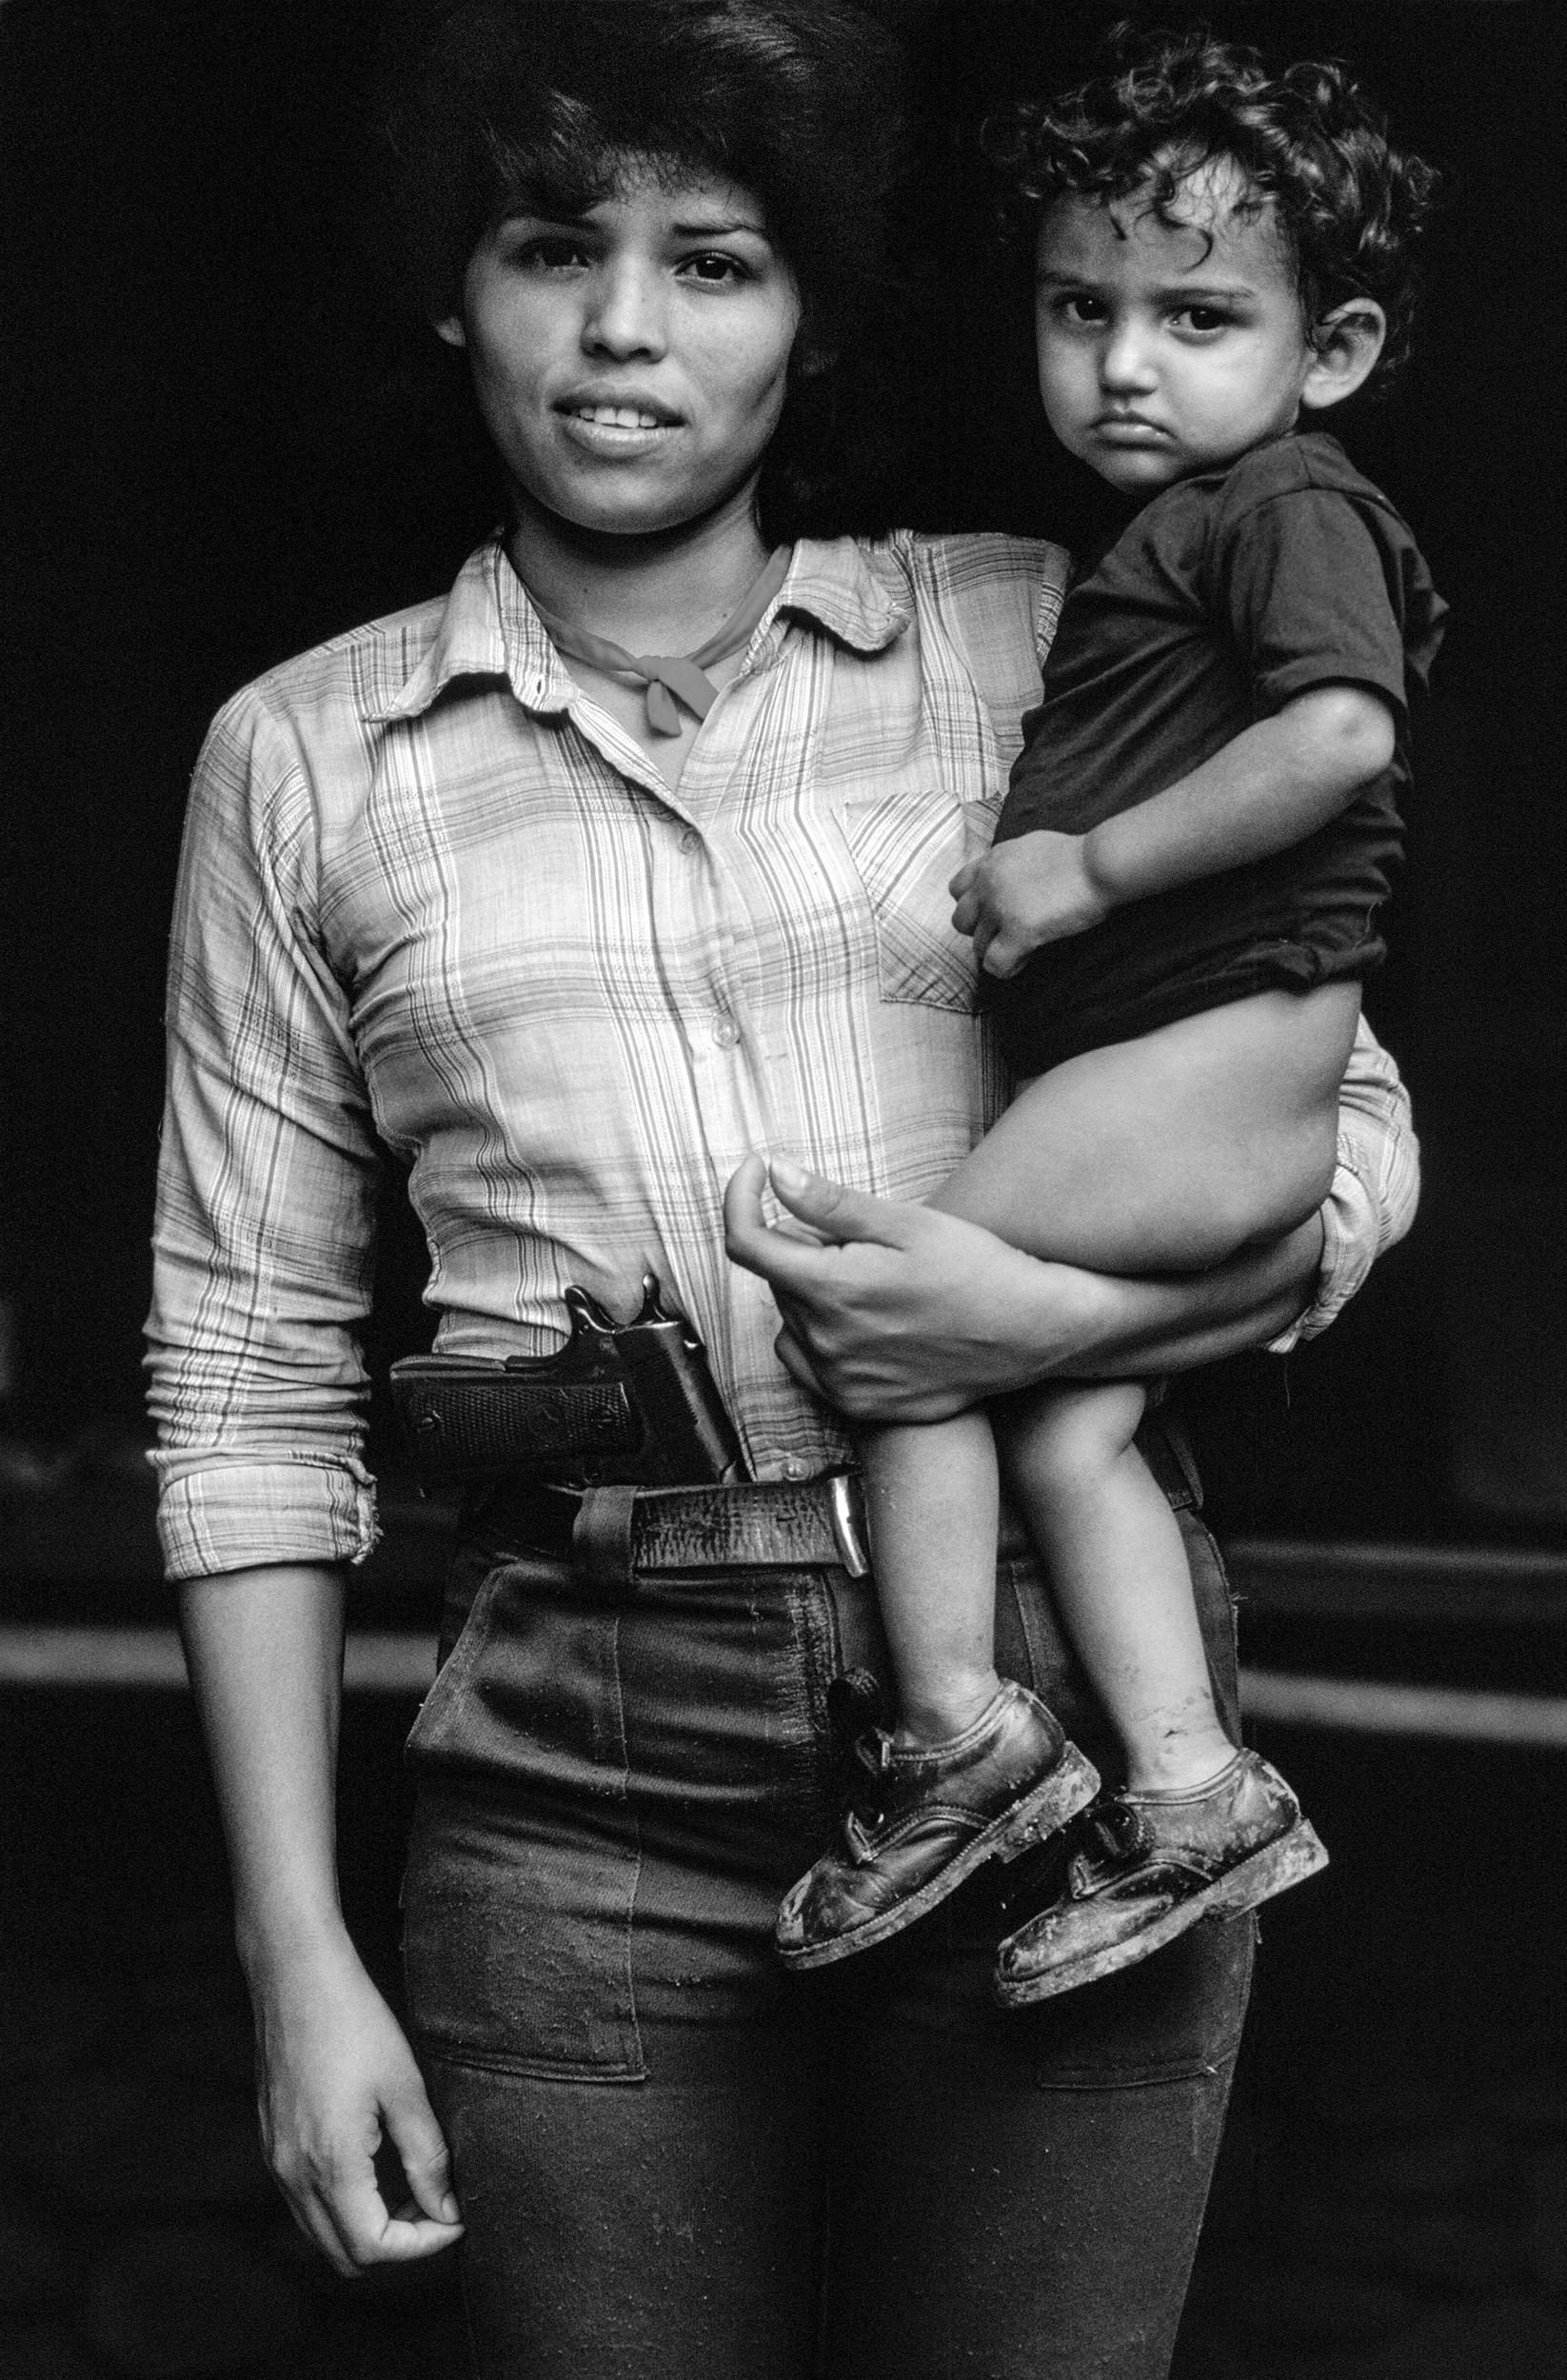 Teresa de Jesus Serrano, aged 22, with her young son. She made uniforms for the FPL guerrillas. Chalatenango, February 1984.